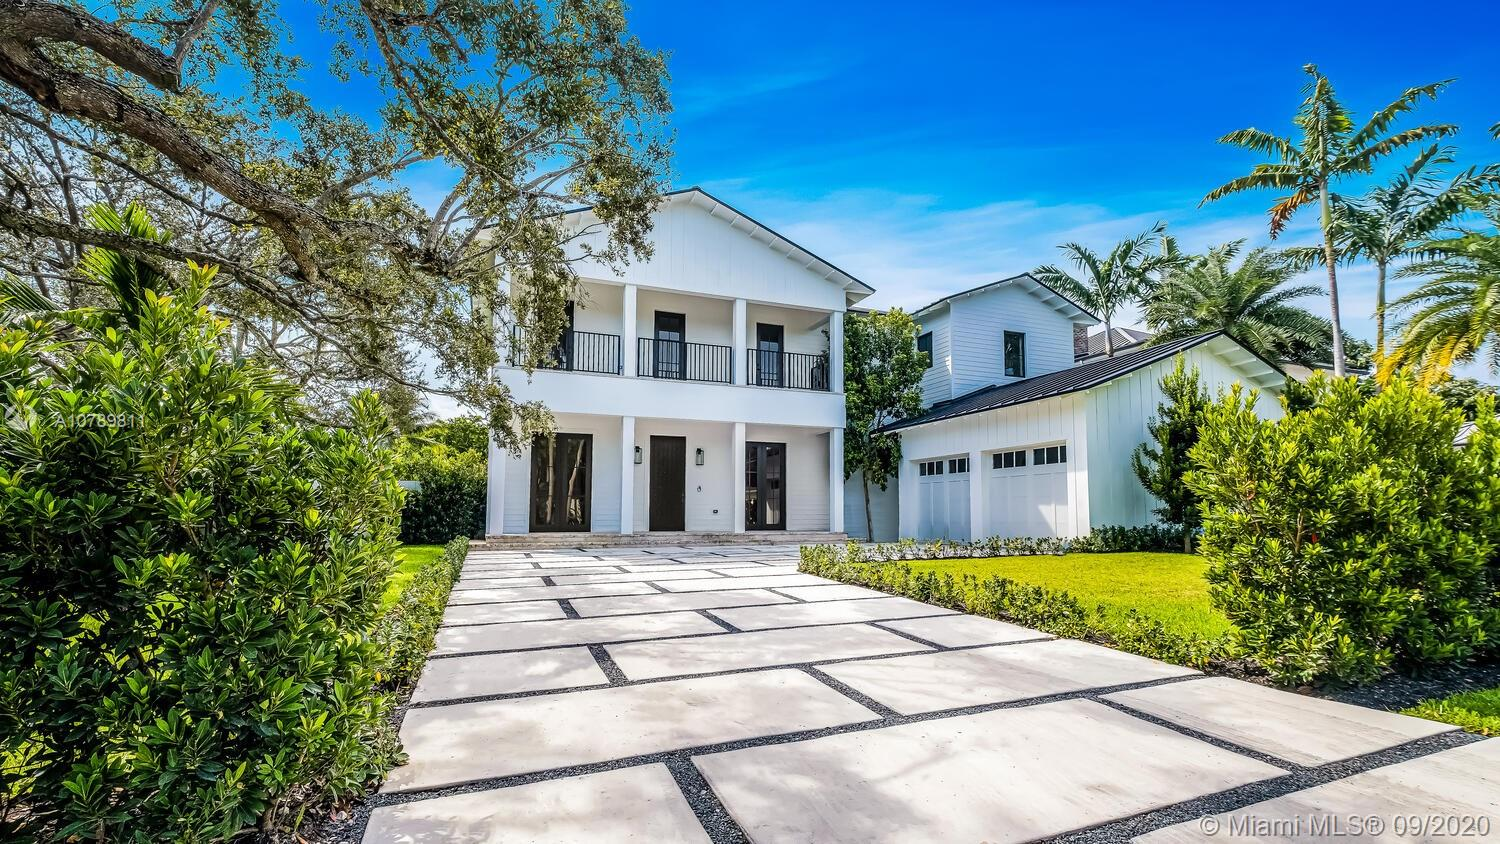 Handsome, heart-of-High-Pines Modern Farmhouse riffs on the classic Key West vernacular in a timeless example of form follows function thruout this gracious, custom, Mocca-built home's 6,056 SF. New 2020 construction, smart features & top-drawer materials make life a breeze. Metal roof, impact windows/doors, European white oak plank floors thruout. Flr 1: Enjoy open pool/garden views from the eat-in kitchen outfitted w/Wolf & Subzero appliances. Generously scaled living, dining, family rms; guest & staff suites; .5 bath; 2-car garage; covered patio. Flr 2: lge Master suite w/His&Her walk-ins, lavish bath, office & balcony; Jr Master; Jack & Jill; laundry/kitchenette. All bdrms en suite. Live elegantly, simply & practically in Miami-Dade County's most charming, walkable, close-in community.